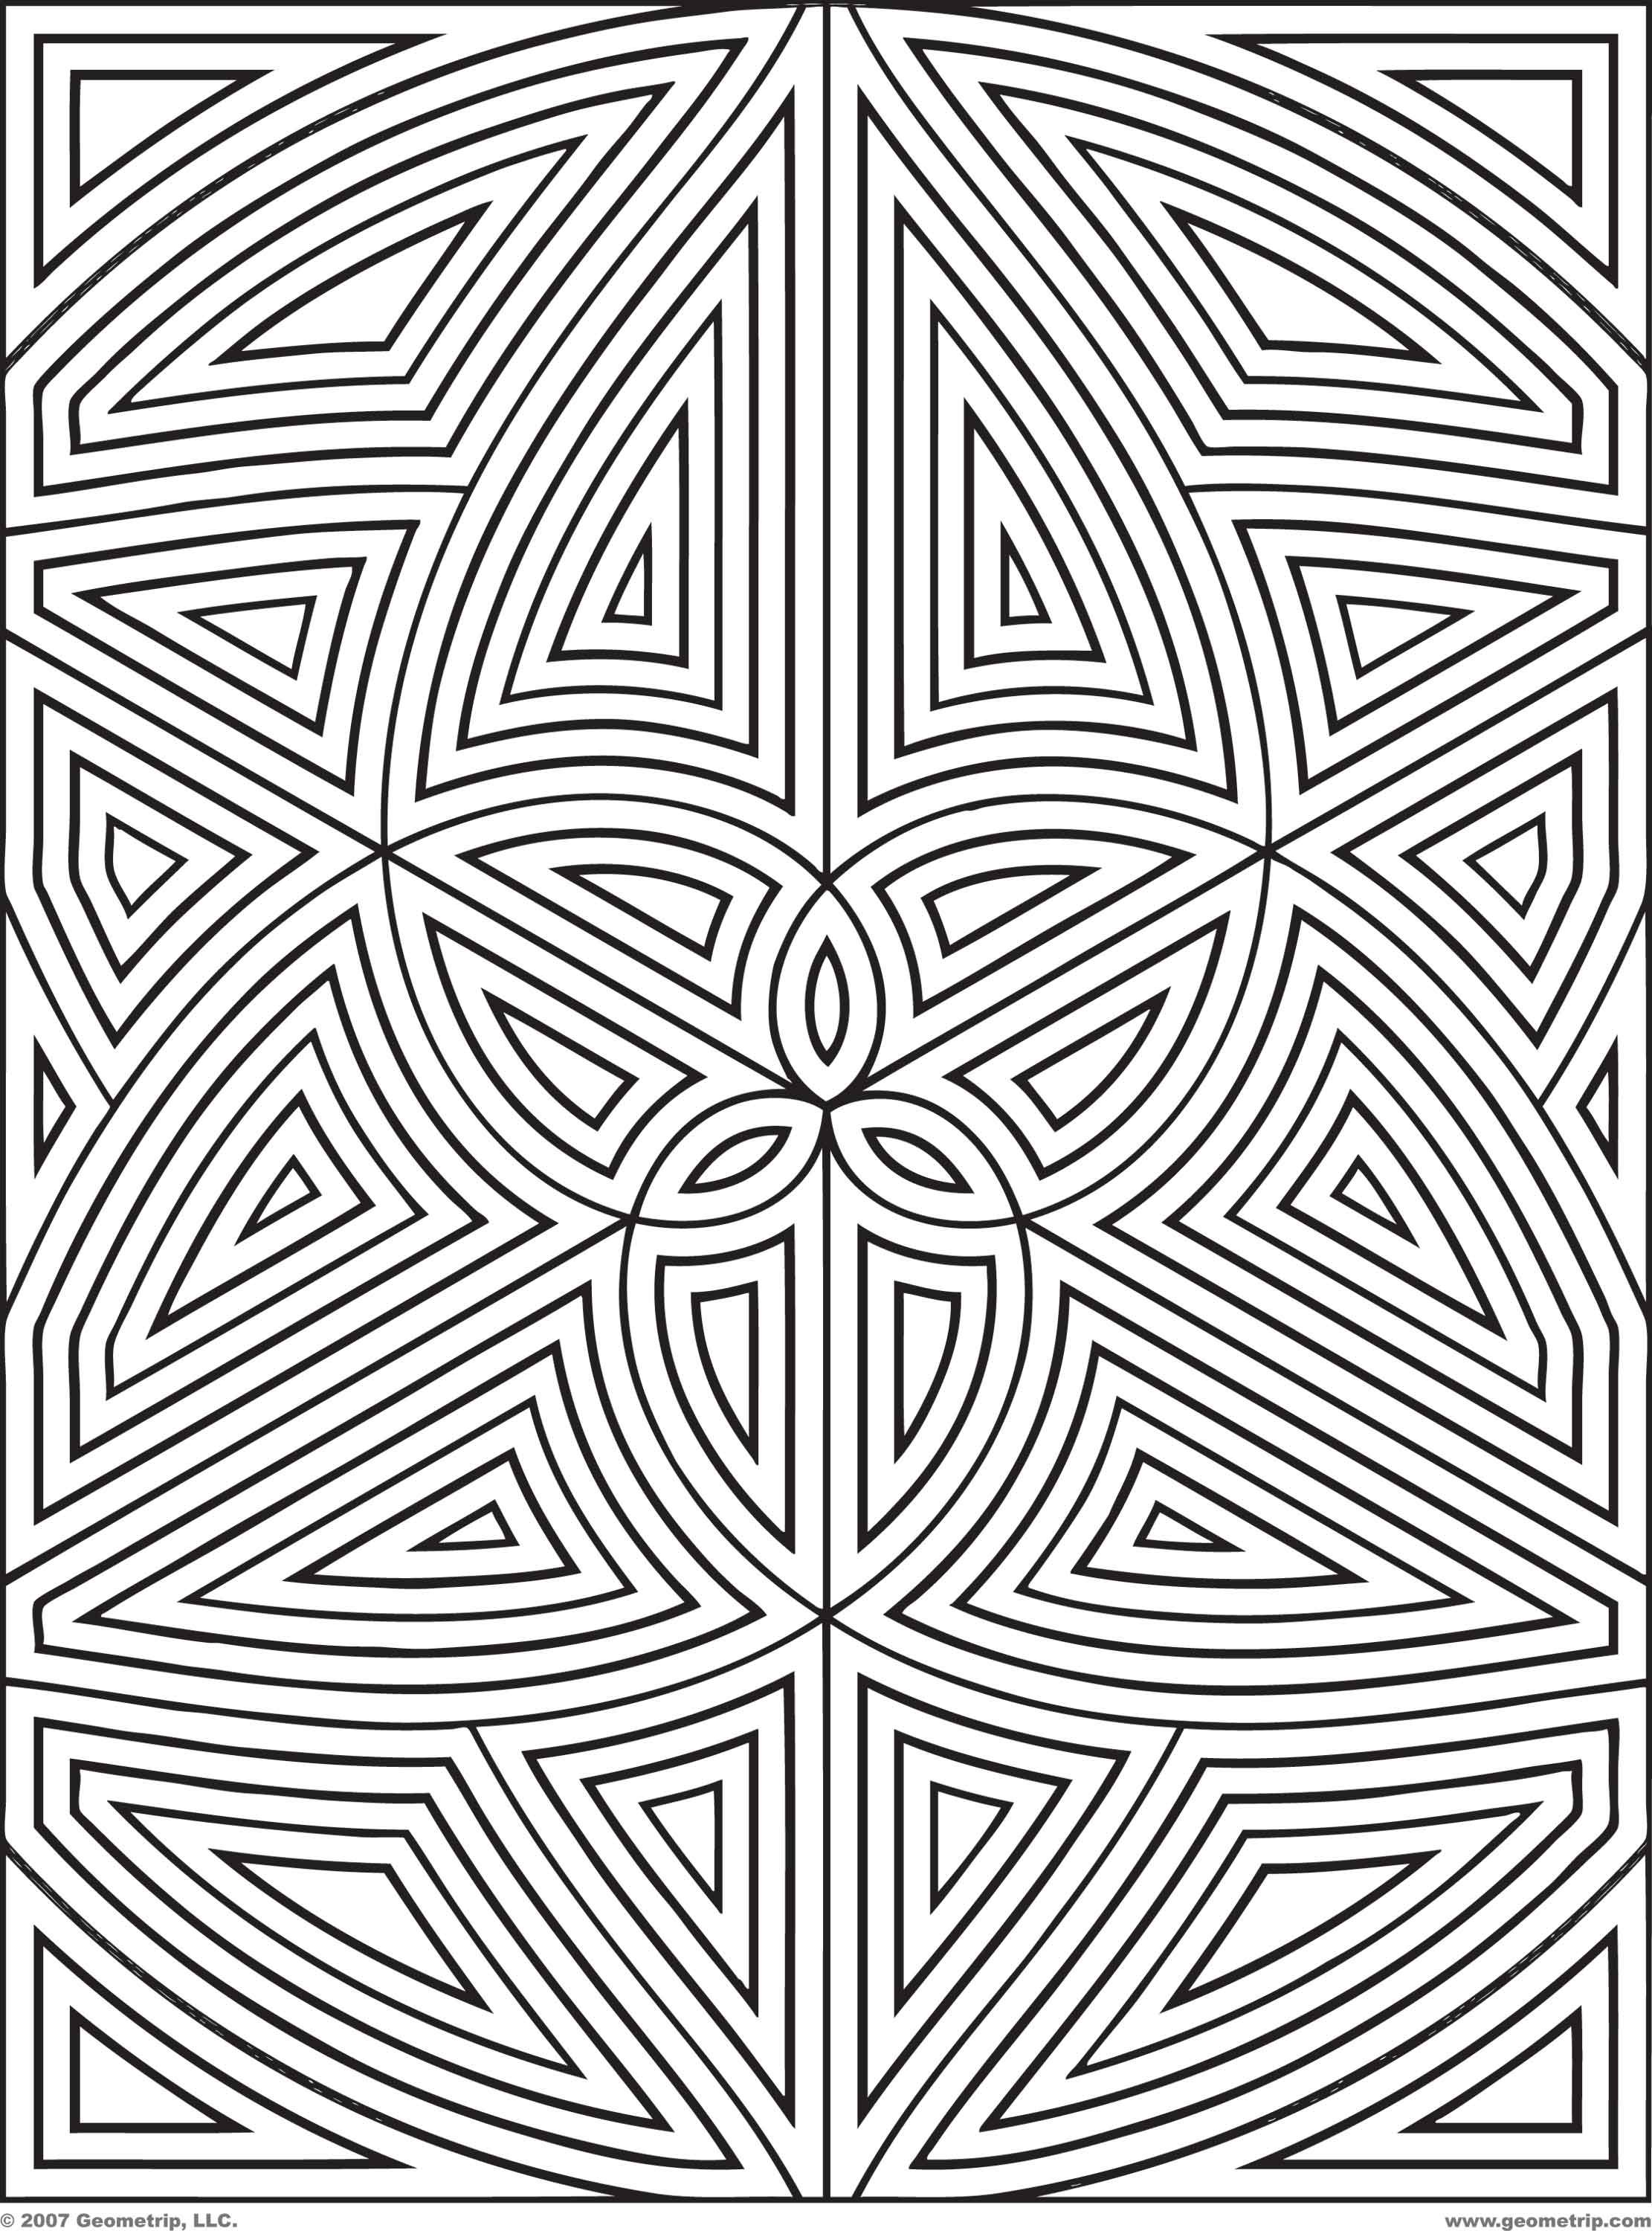 Coloring pages patterns - Difficult Geometric Design Coloring Pages Rectangles Page 1 Of 2